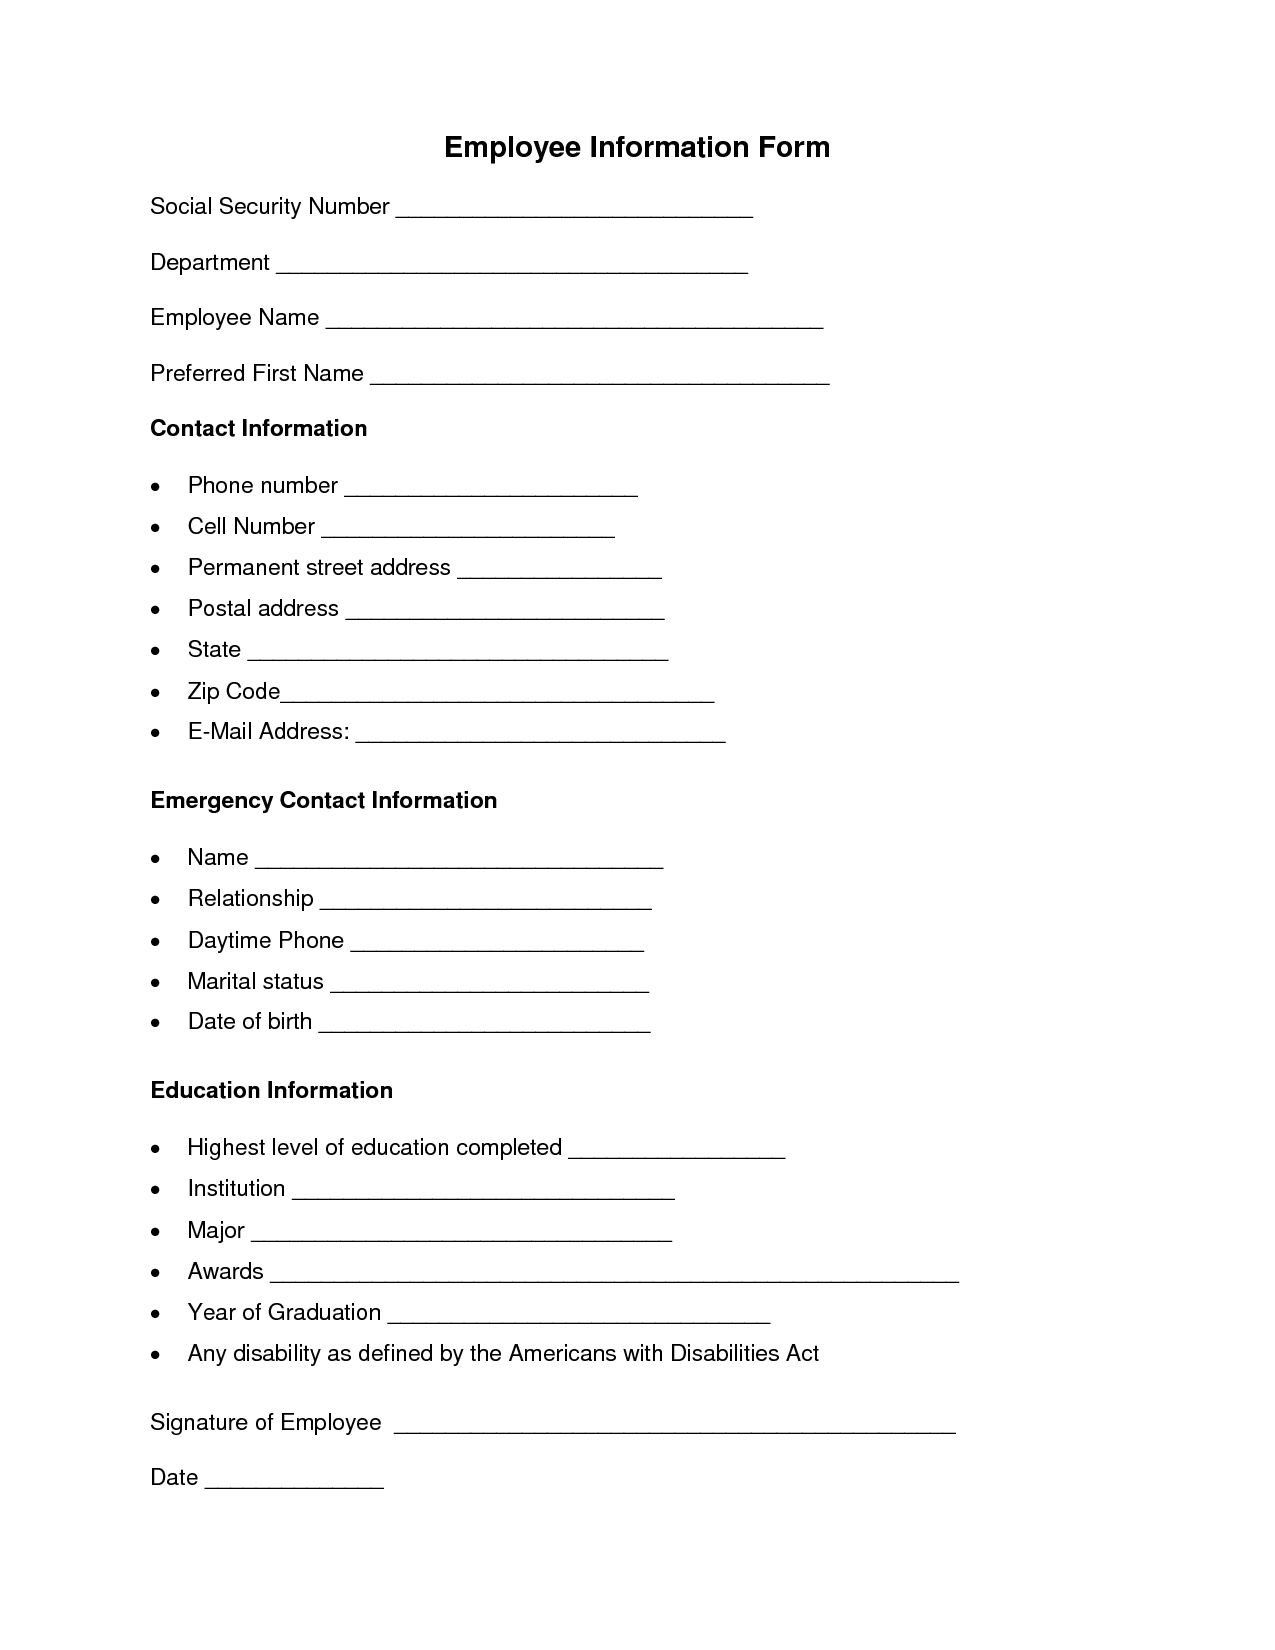 Employee Information Form – Employee Contact Information Template